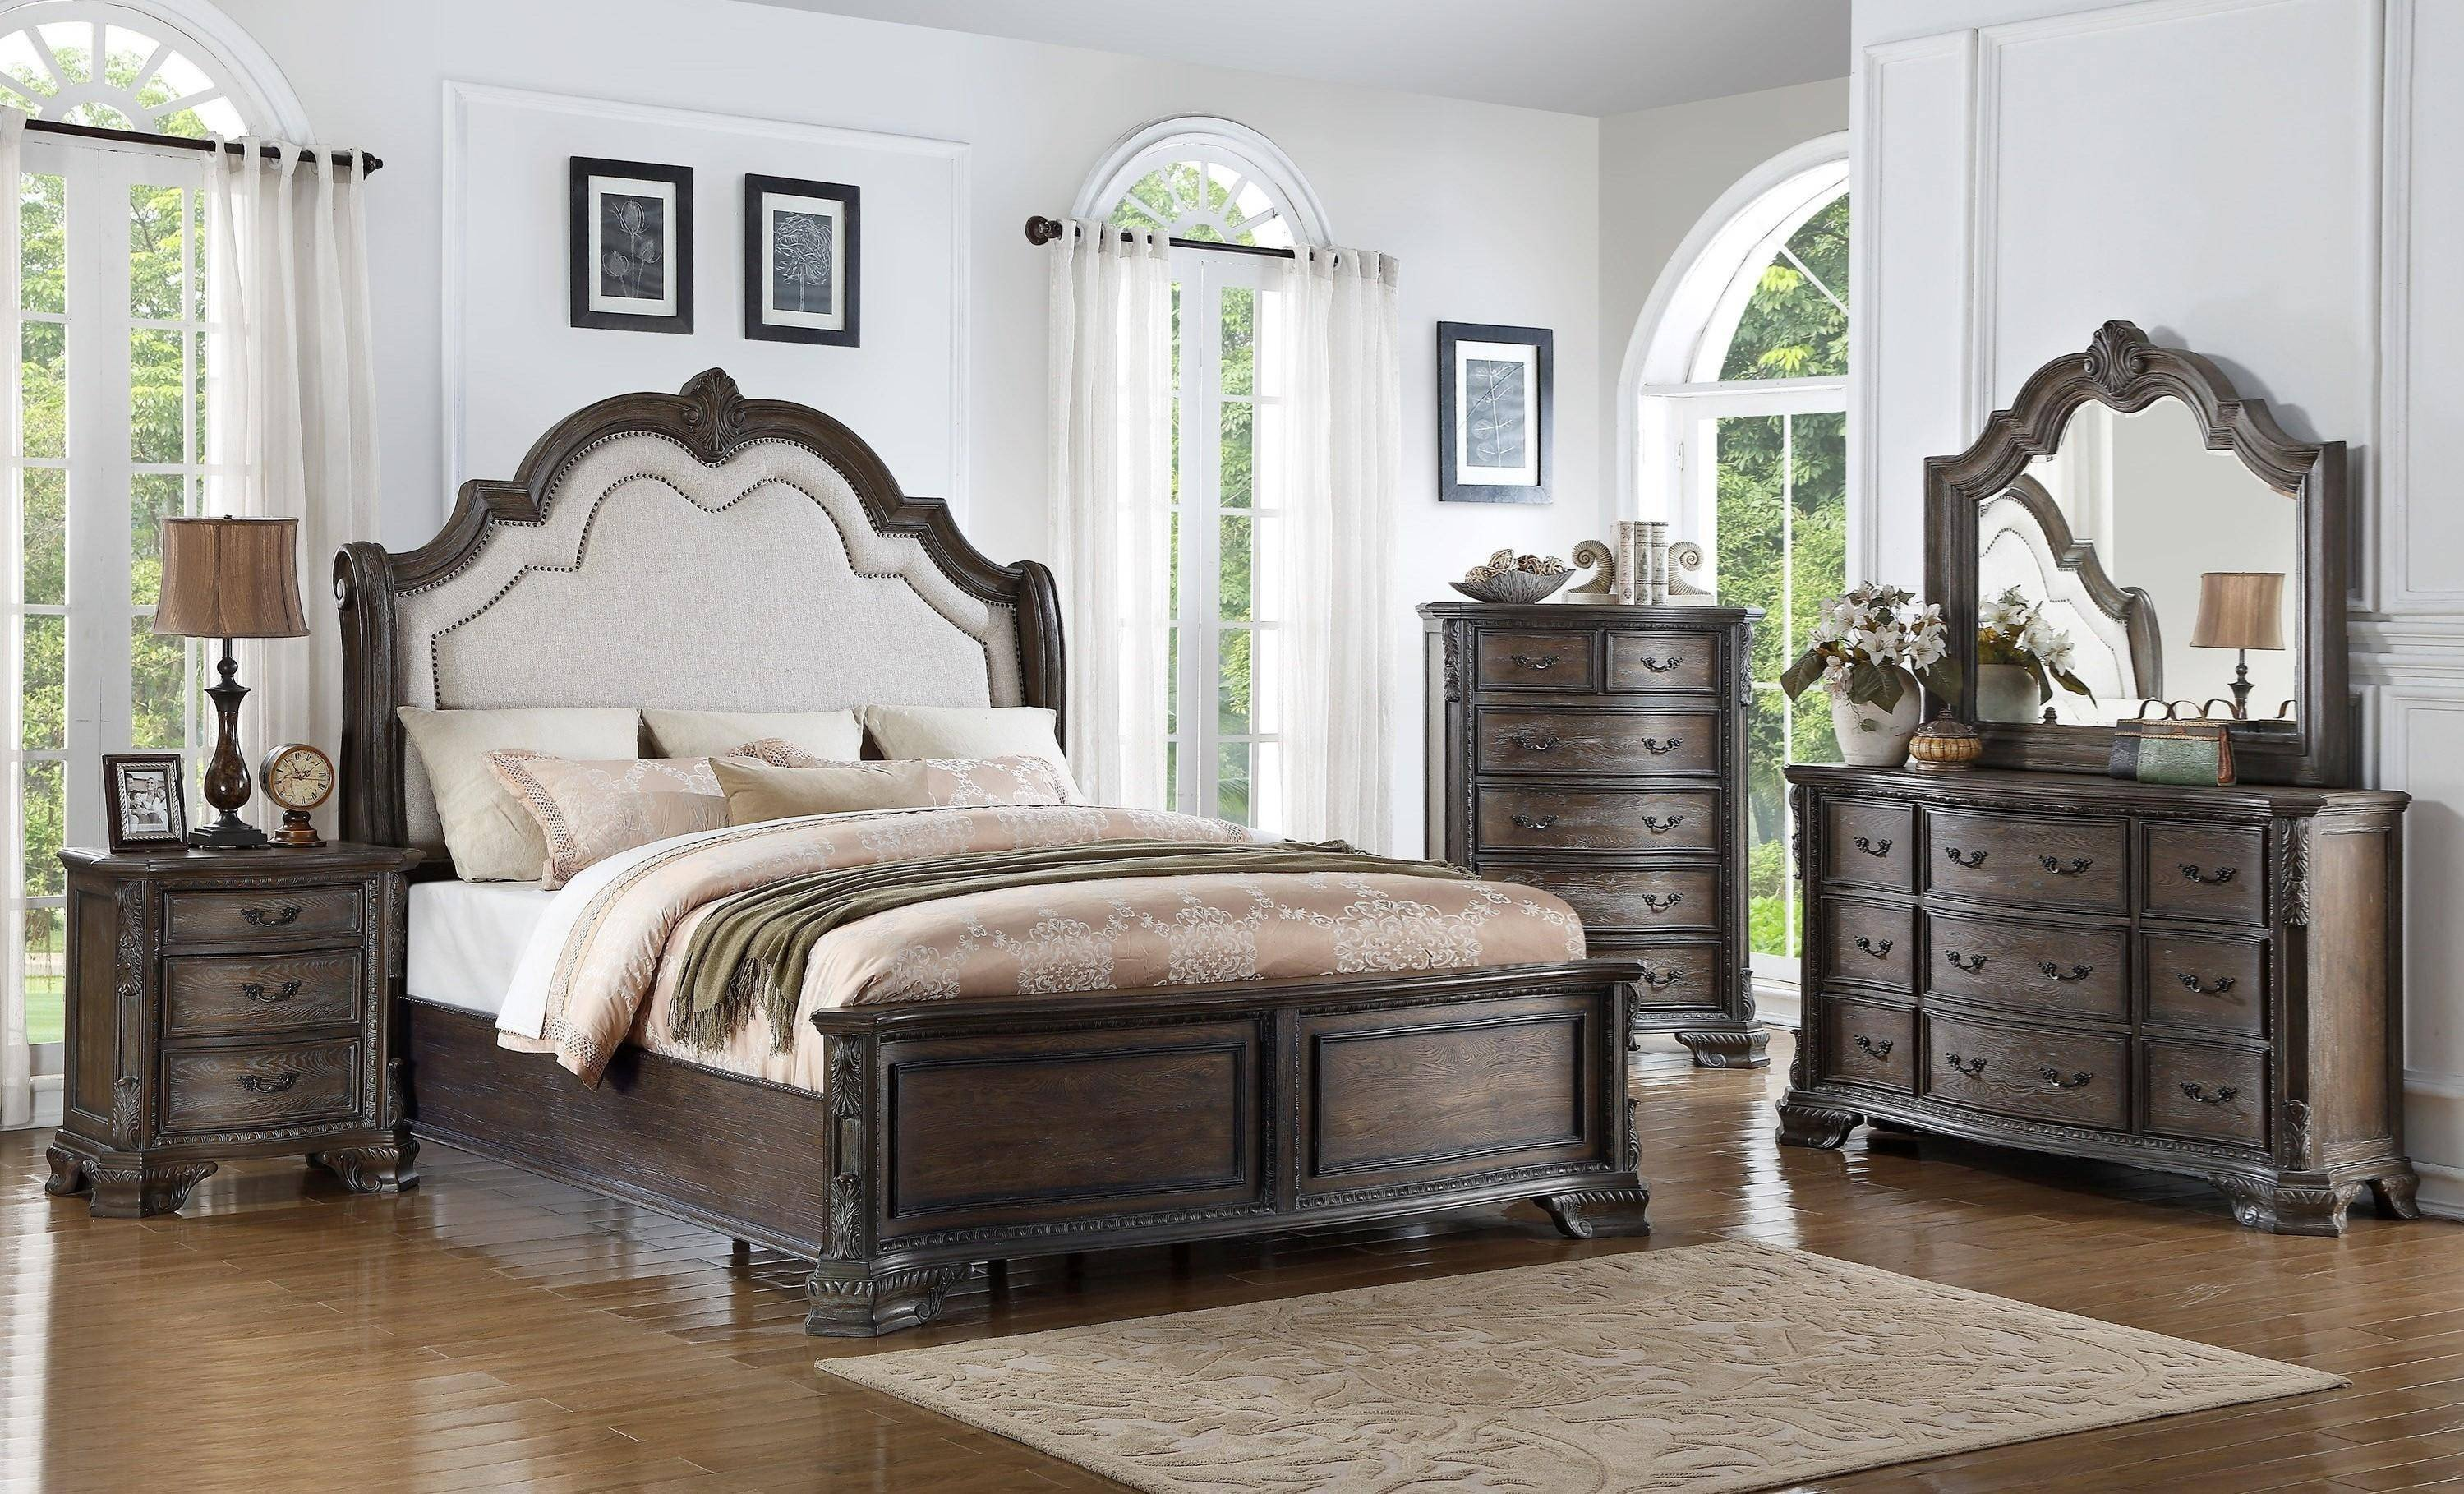 Rustic Queen Bedroom Set Awesome Crown Mark B1120 Sheffield Queen Panel Bed In Gray Fabric